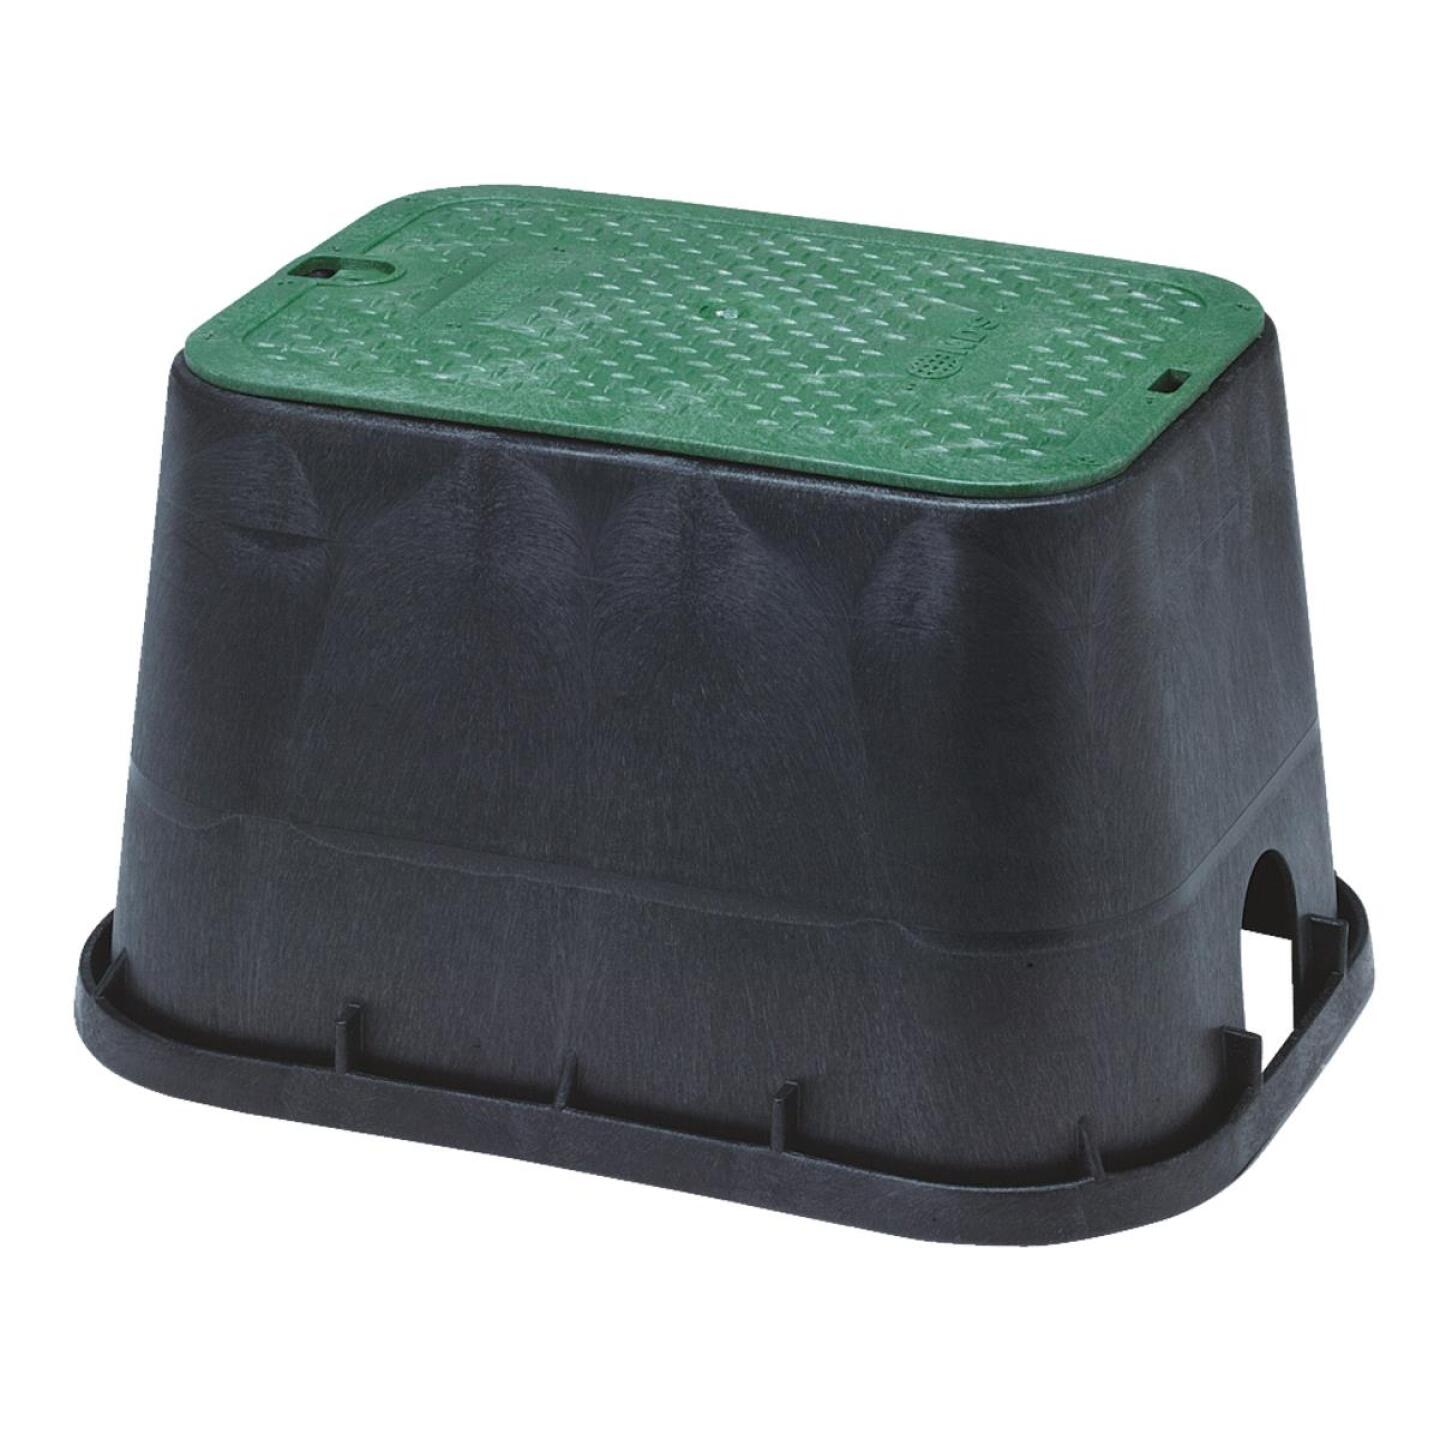 National Diversified 14 In. x 19 In. Standard Rectangular Black & Green Valve Box with Cover Image 1